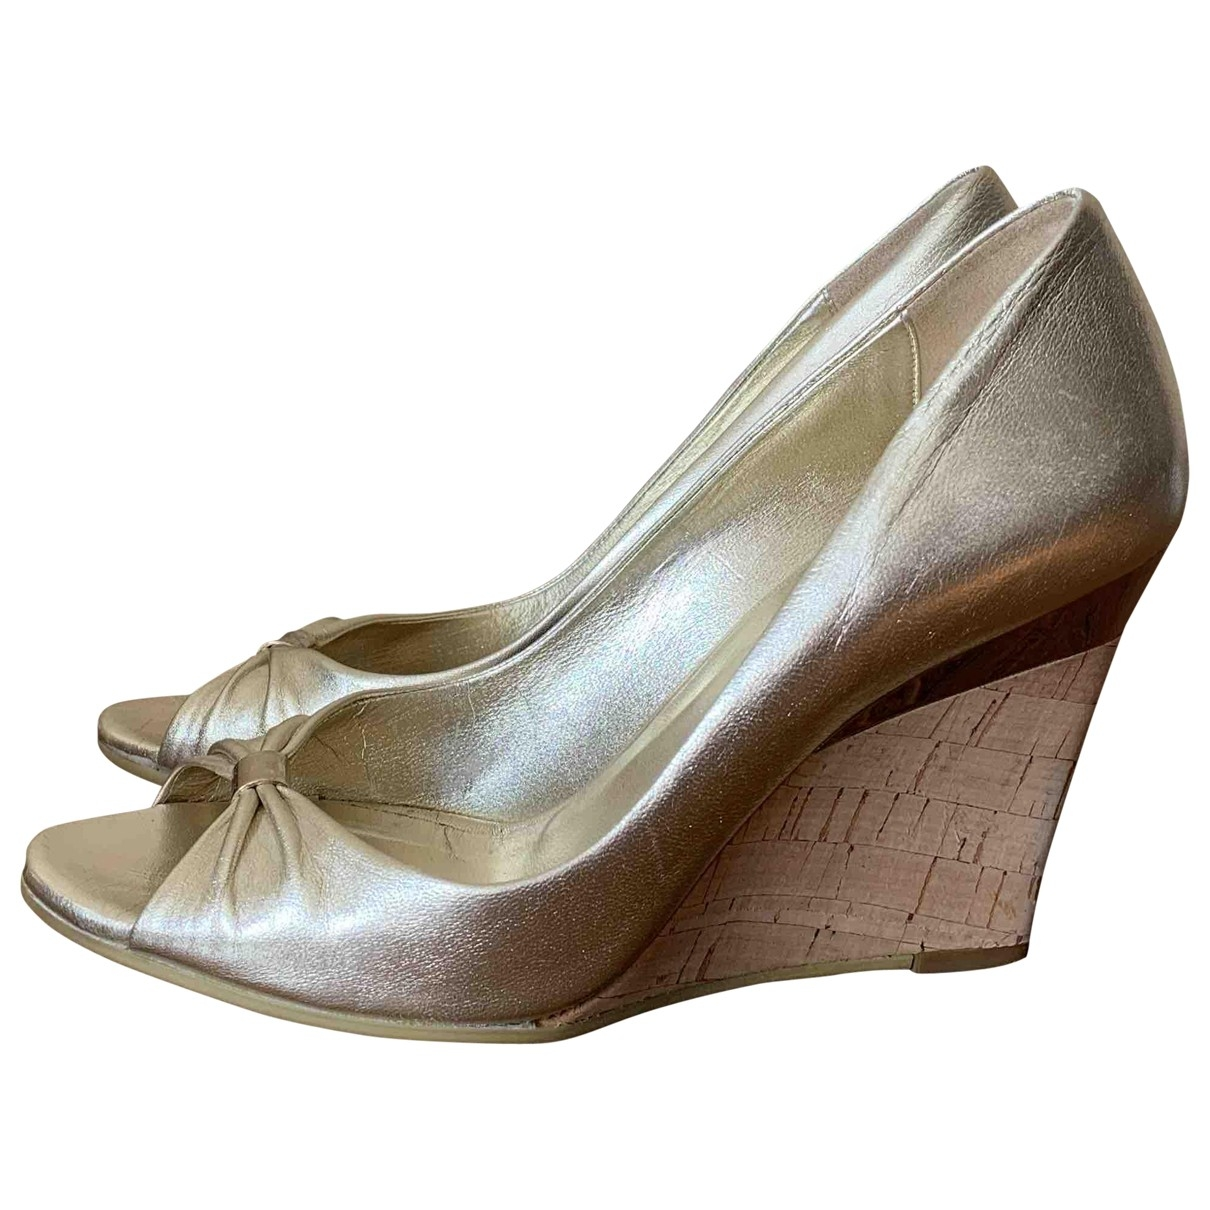 Gucci \N Beige Leather Heels for Women 36.5 EU